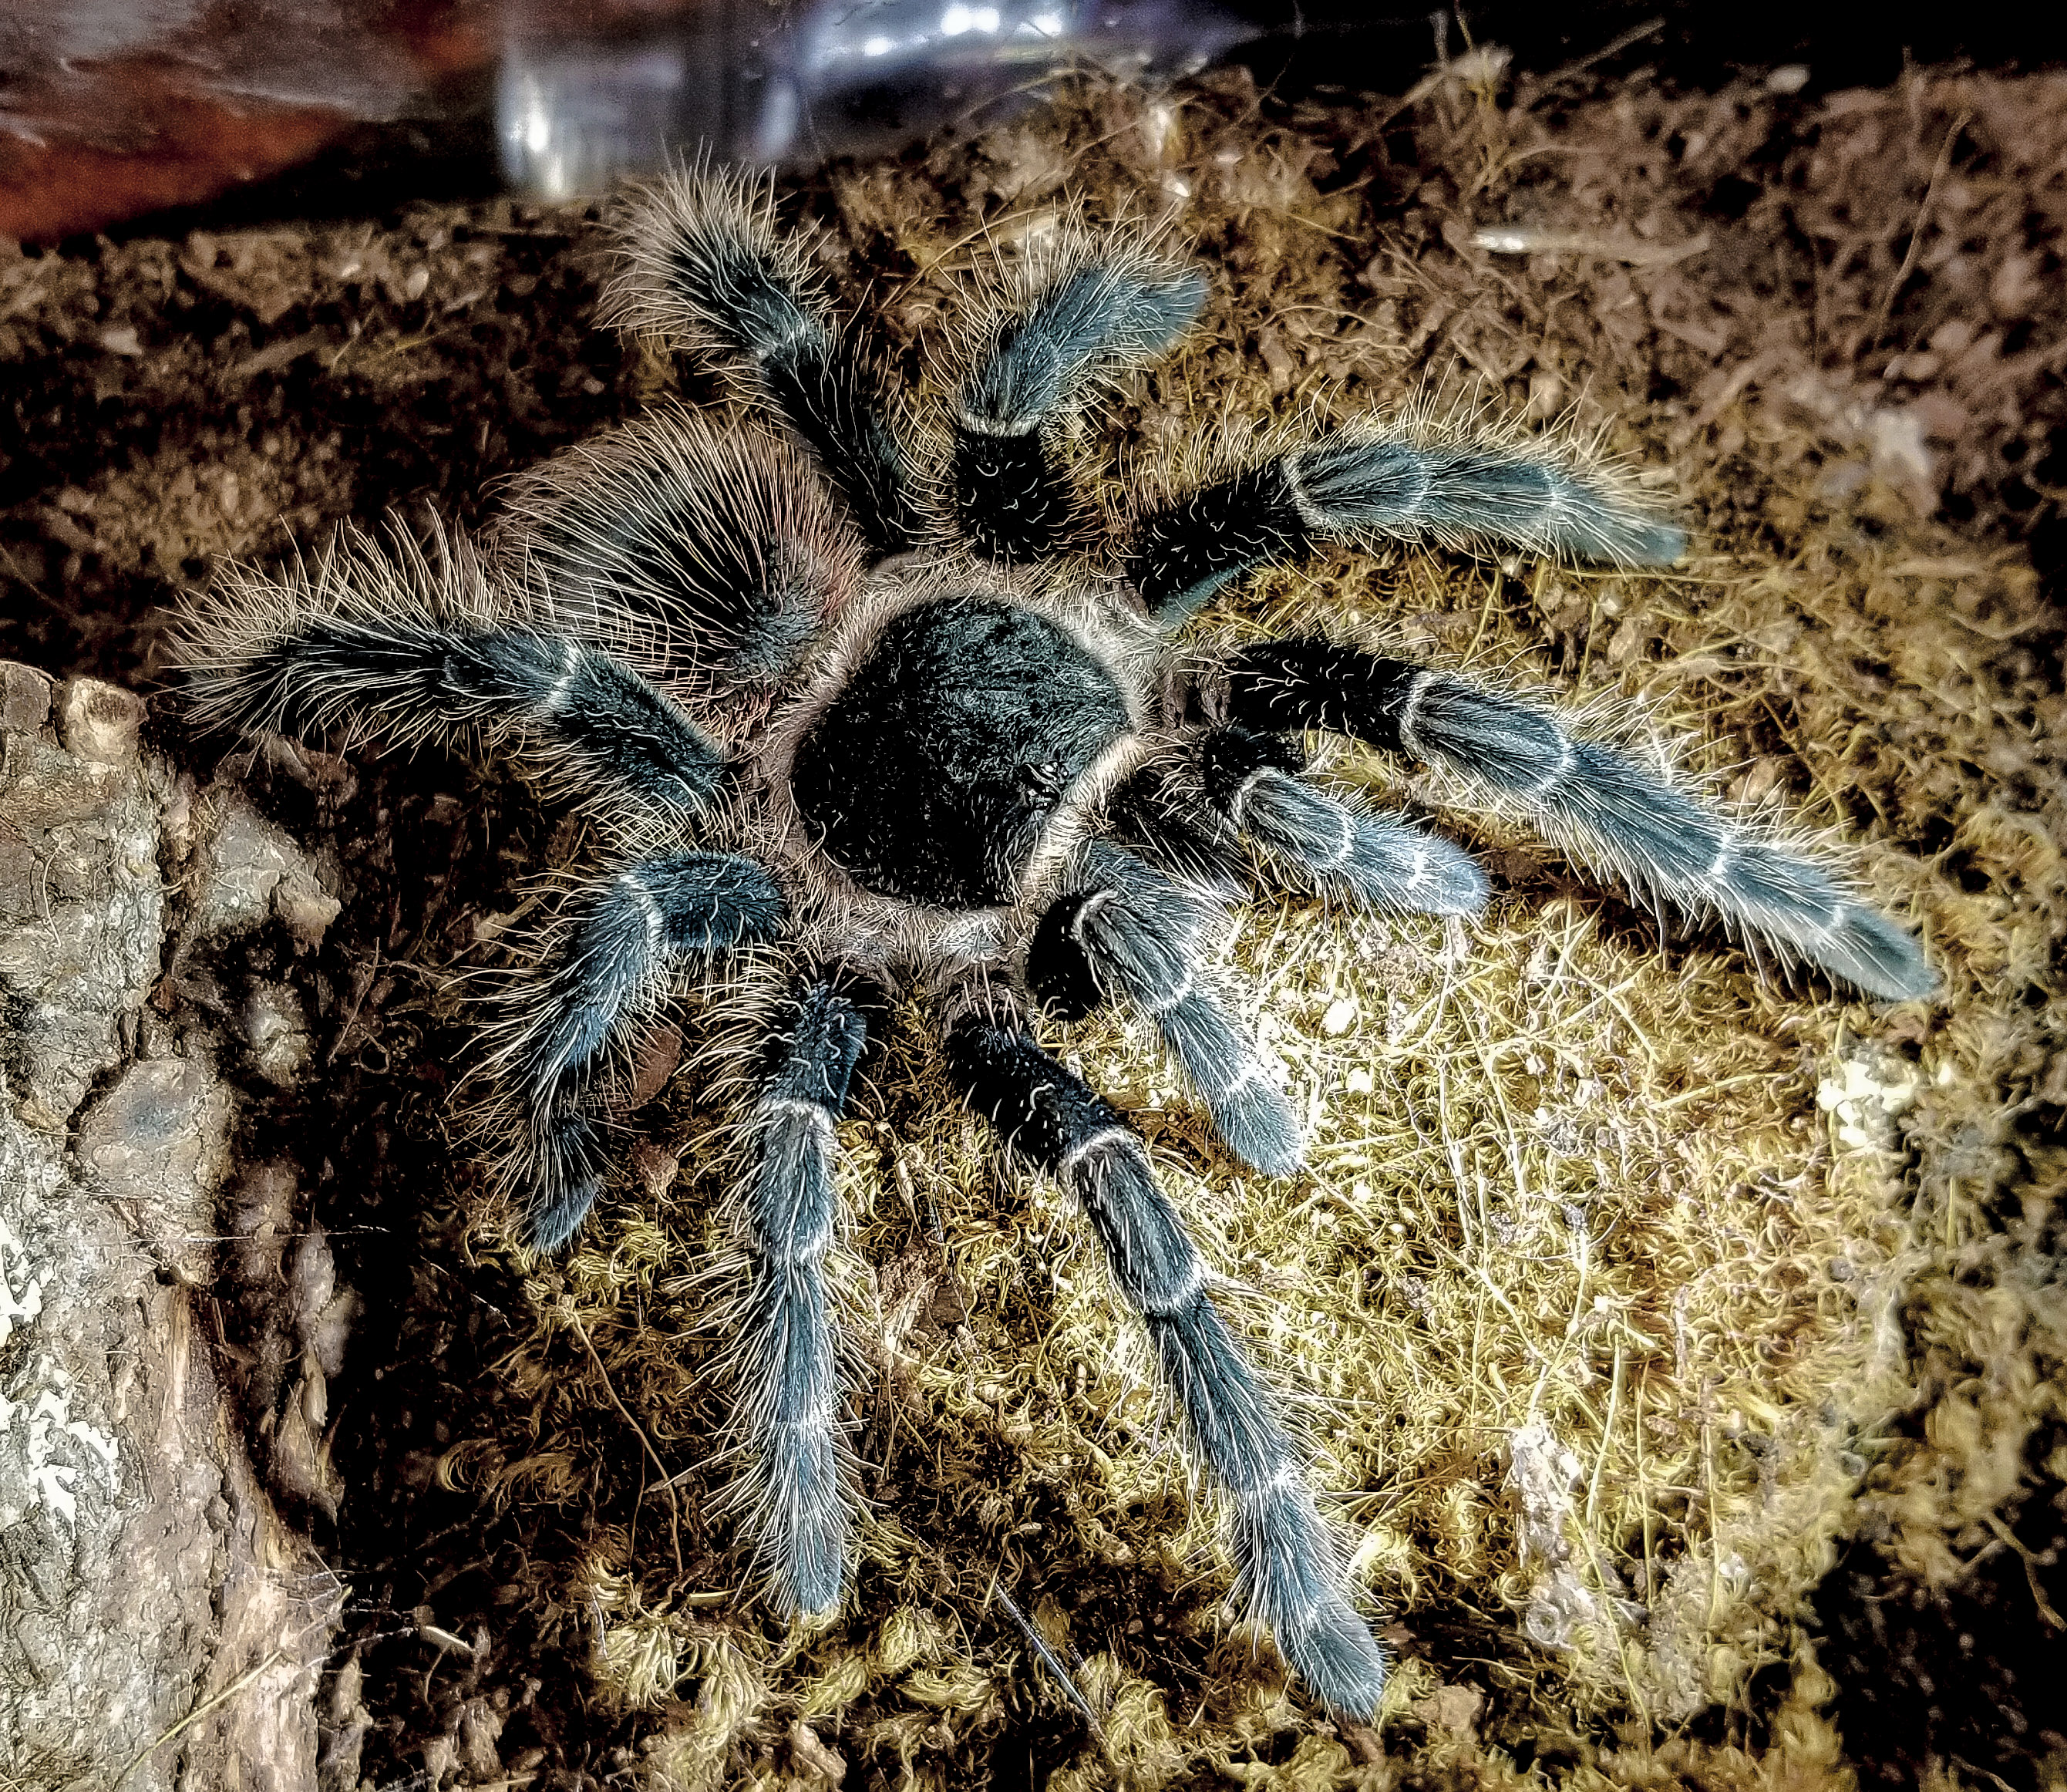 L klugi Justina 2nd day May 2018 molt1.jpg